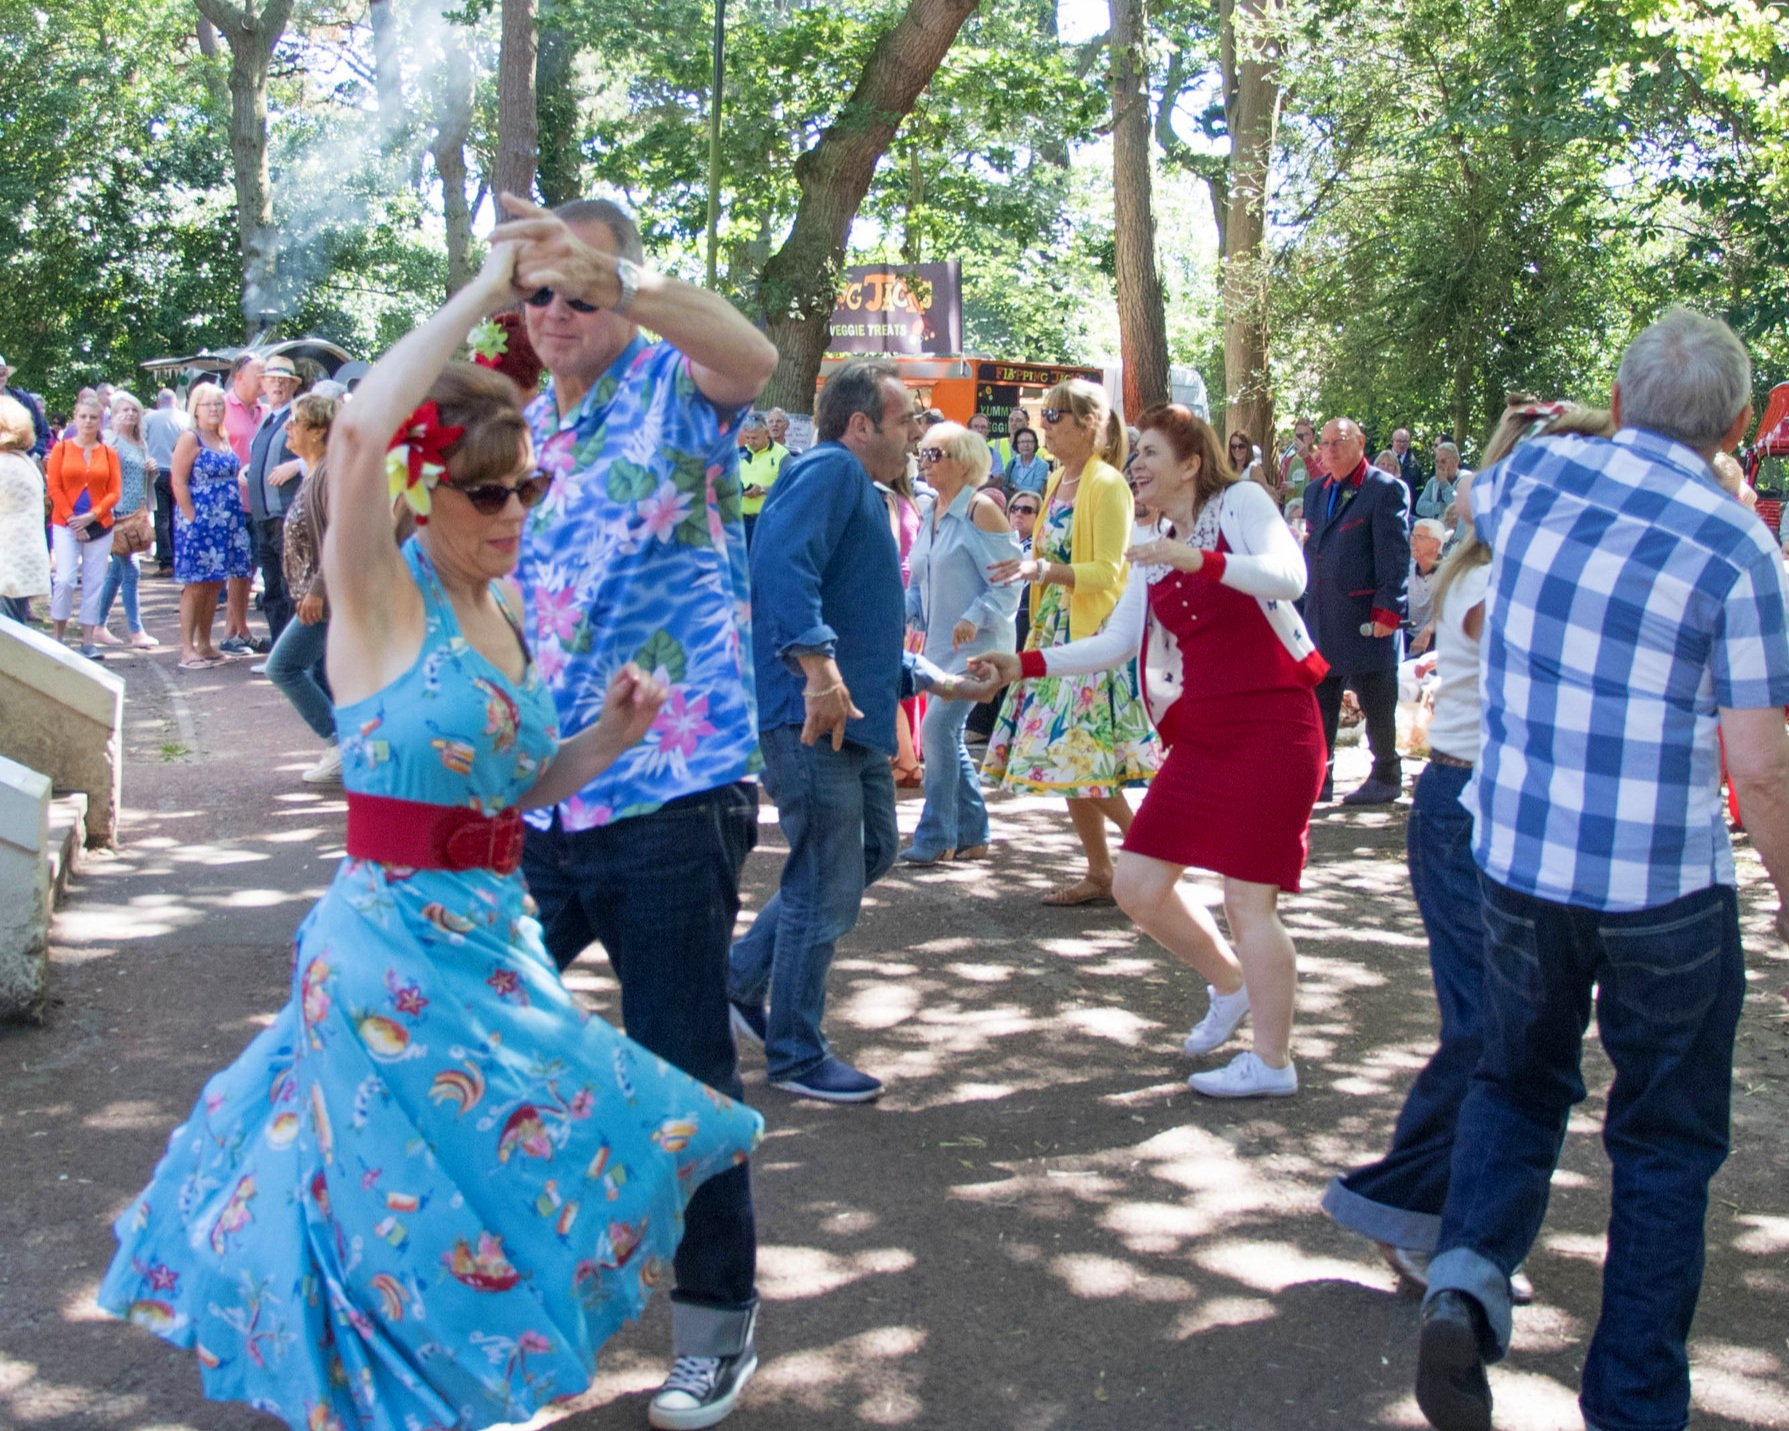 Looking back at last year's Shake & Stir vintage music festival! - by Stir! Events Limited